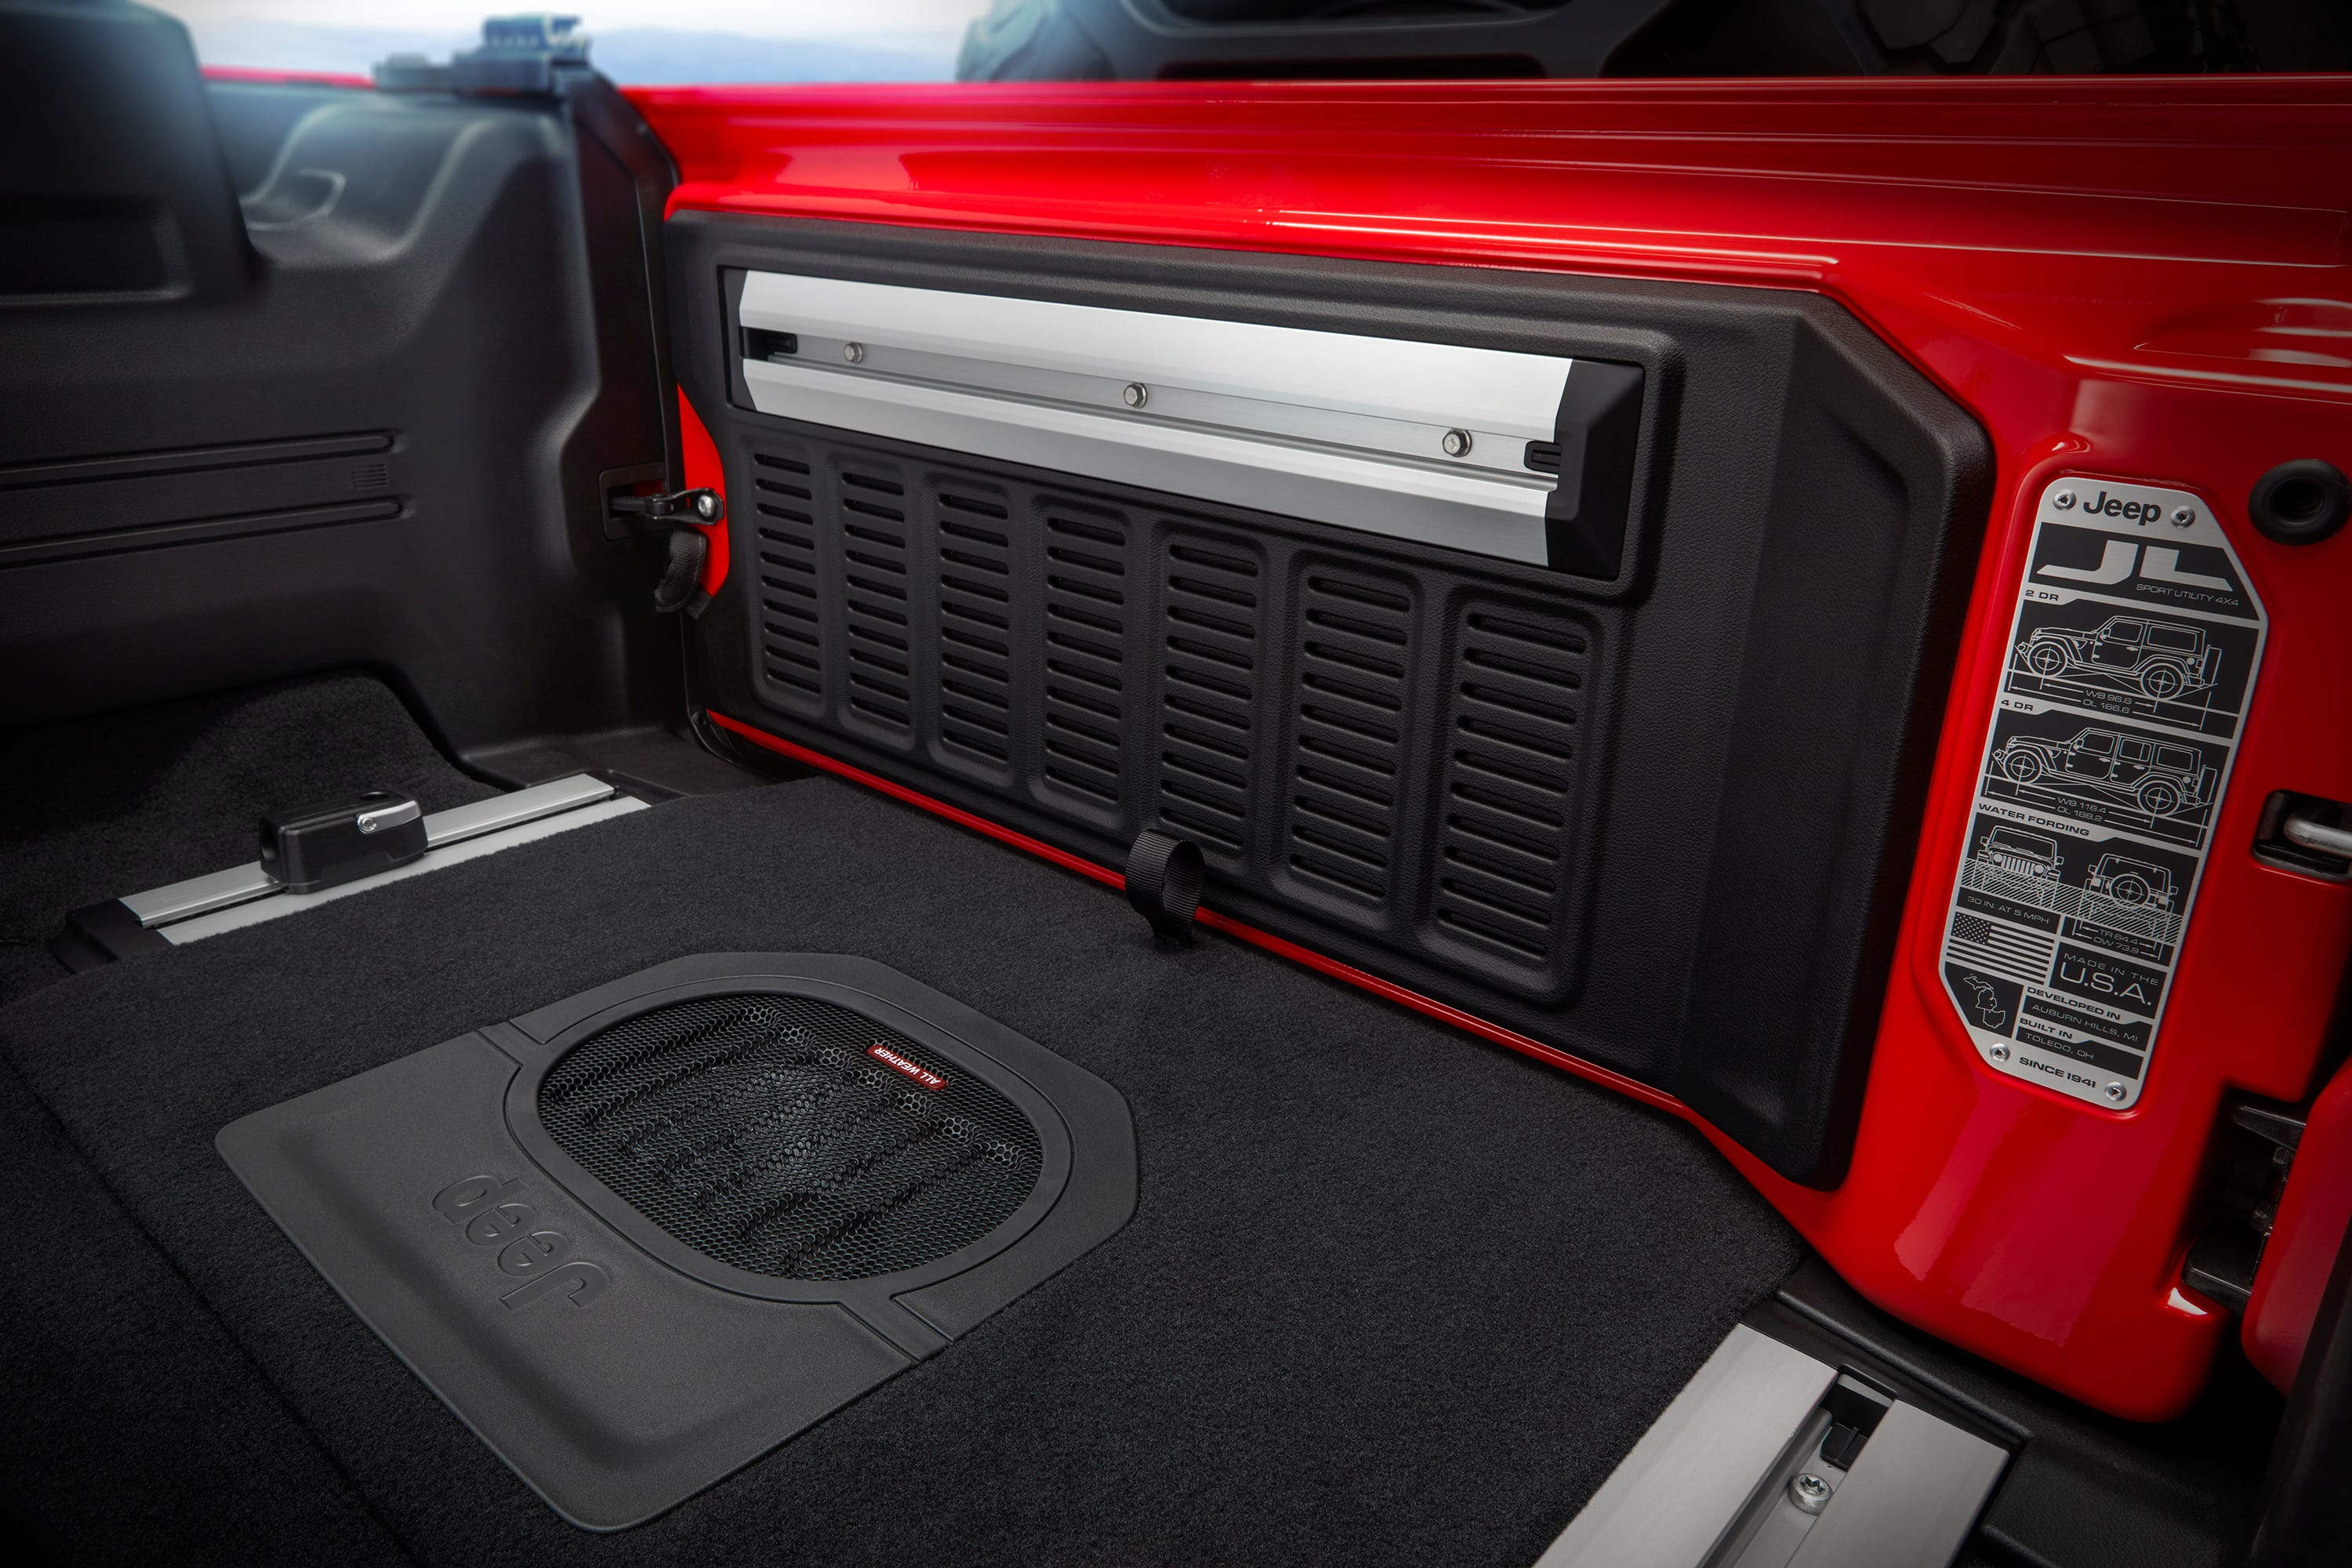 This is the cargo area in the 2018 Jeep Wrangler Rubicon.